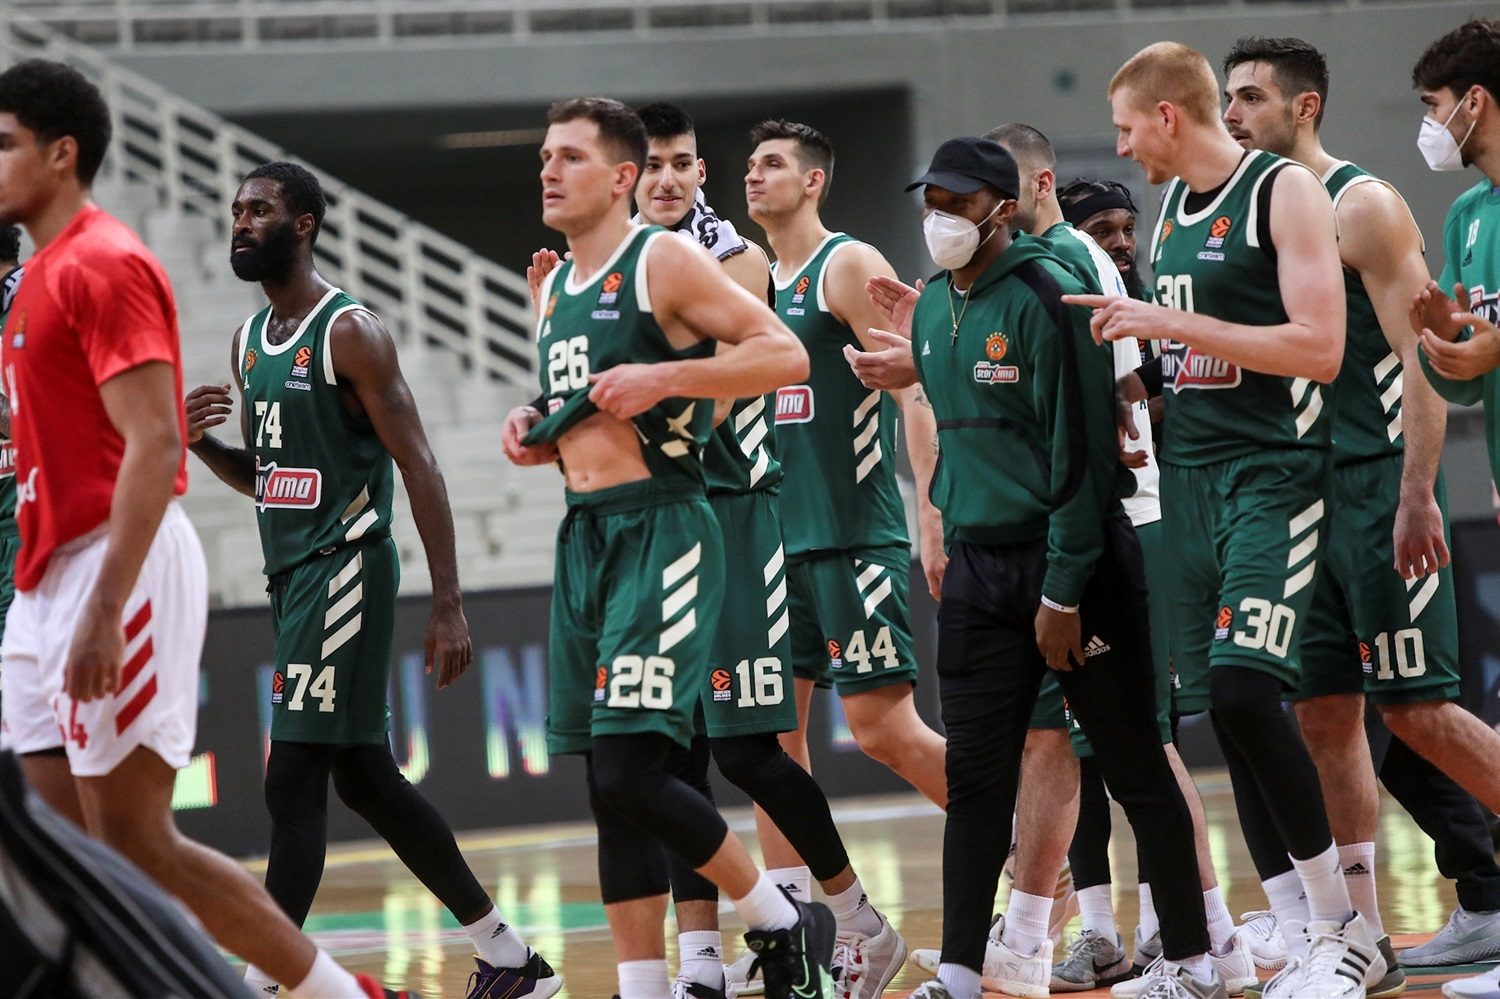 Players Panathinaikos OPAP Athens - EB20